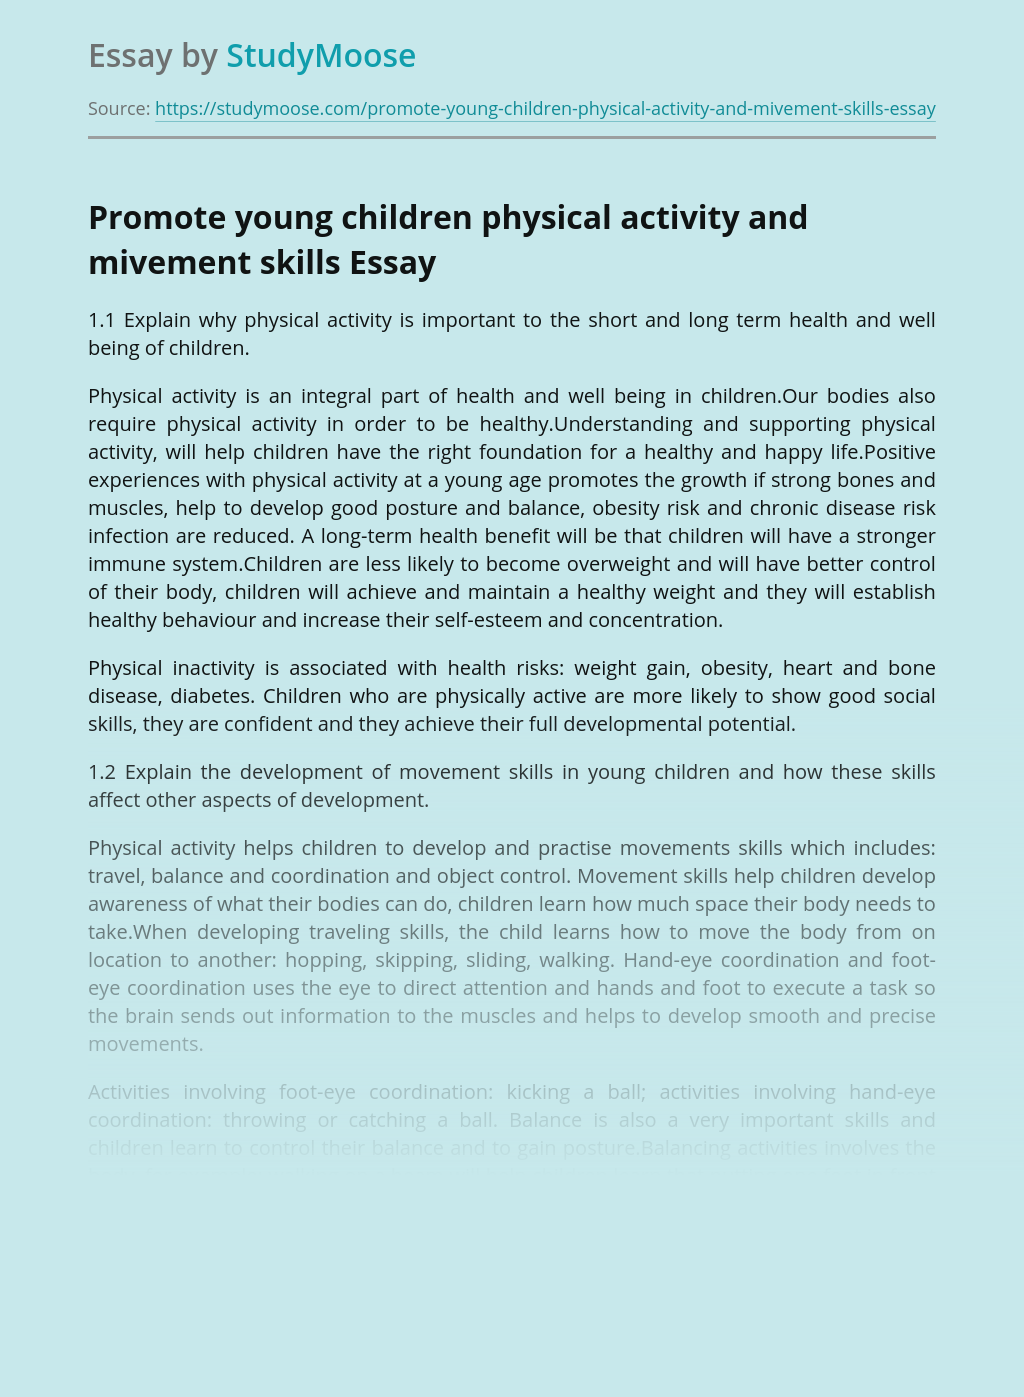 Promote young children physical activity and mivement skills